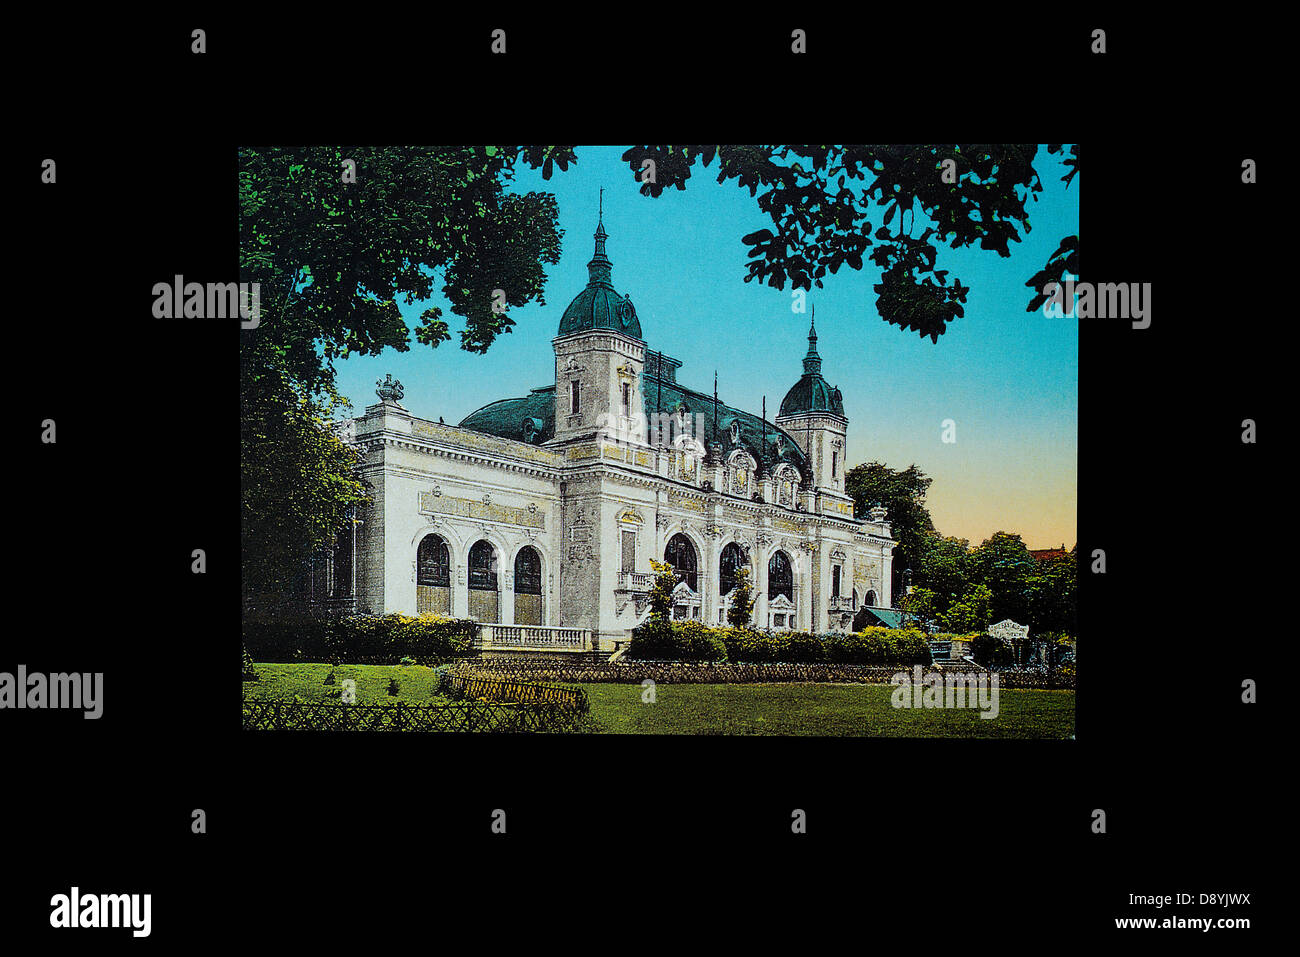 a n house in an old post card - Stock Image